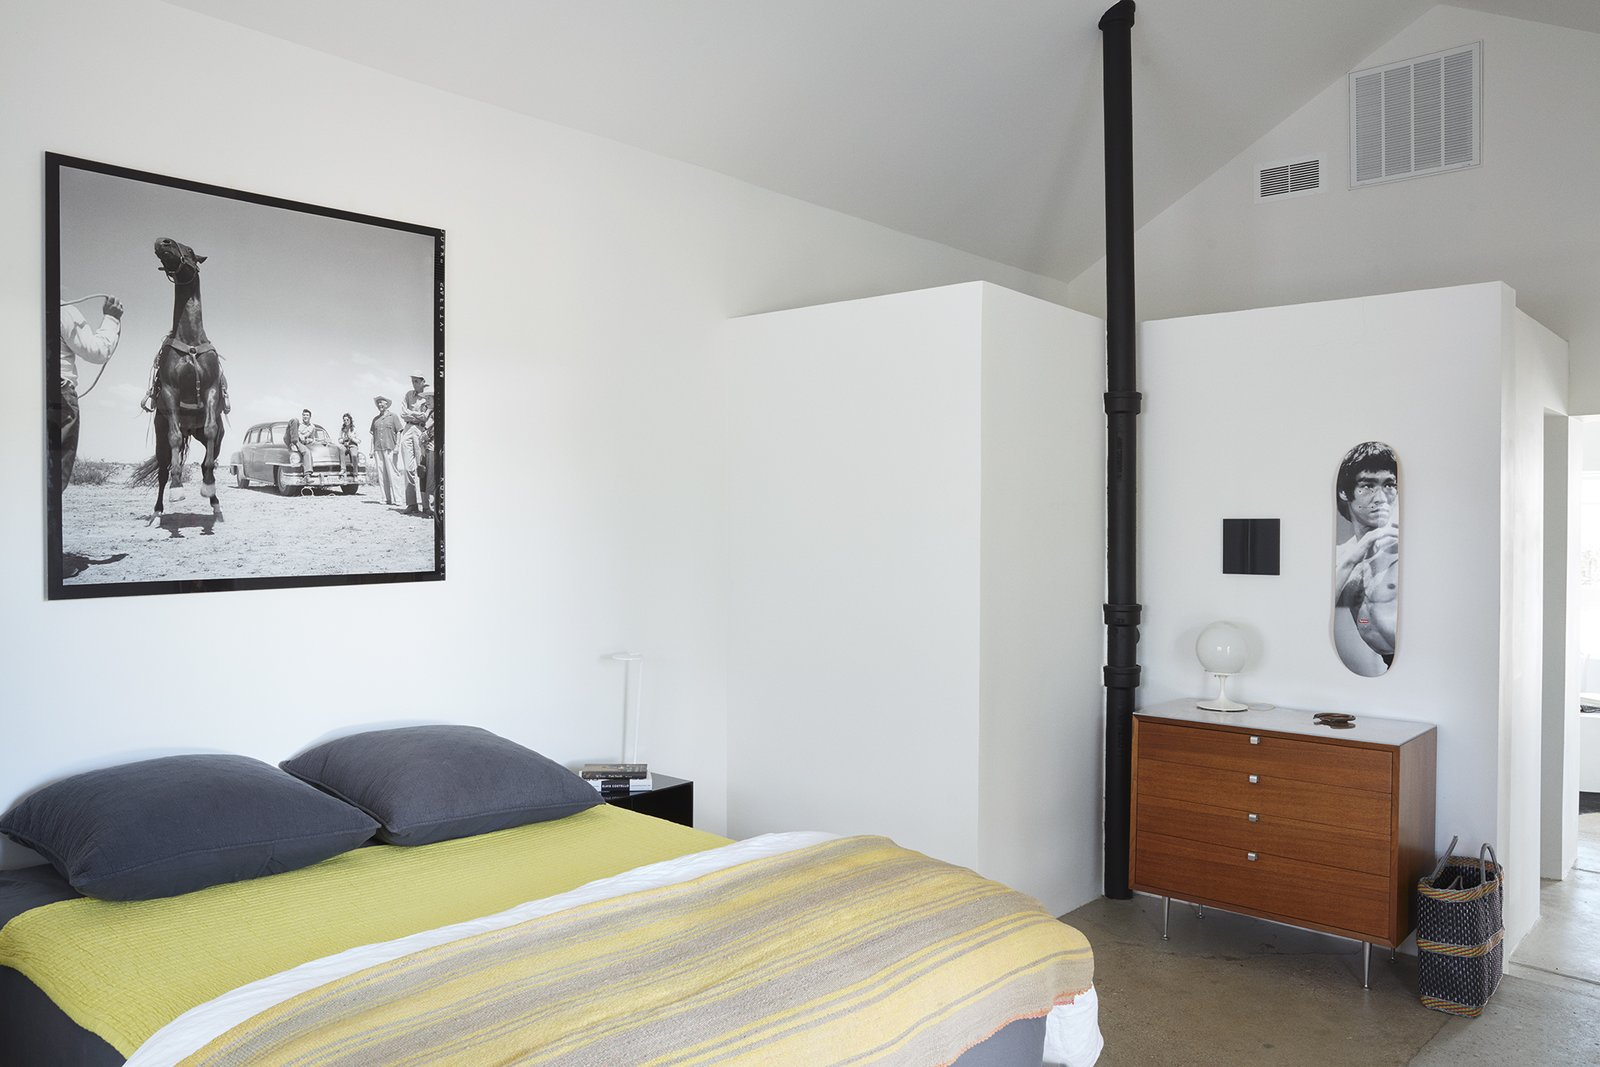 The ceiling is 15 feet high in the bedroom, where a photograph from the set of the movie Giant, which was filmed in Marfa, complements <br>a chartreuse throw from El Cosmico and a Bruce Lee Supreme skate deck from Exhibitions 2d.